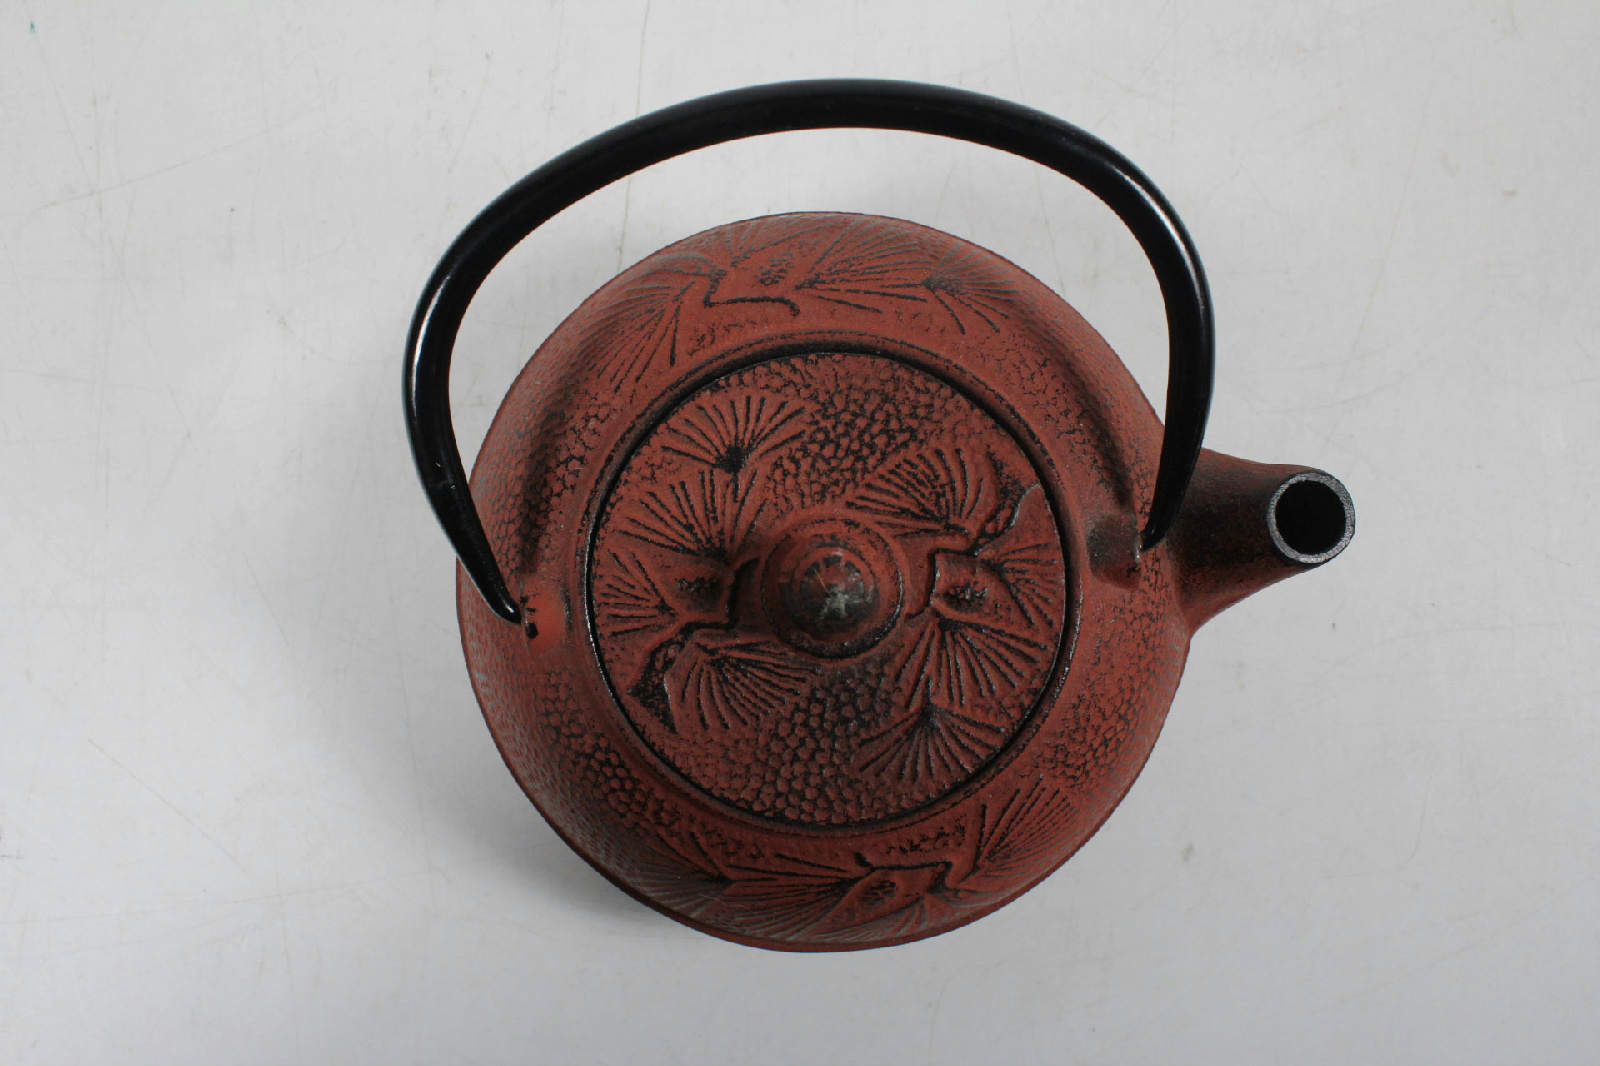 Collectible small japanese cast iron tea pot removable lid with screen strainer ebay - Japanese teapot with strainer ...